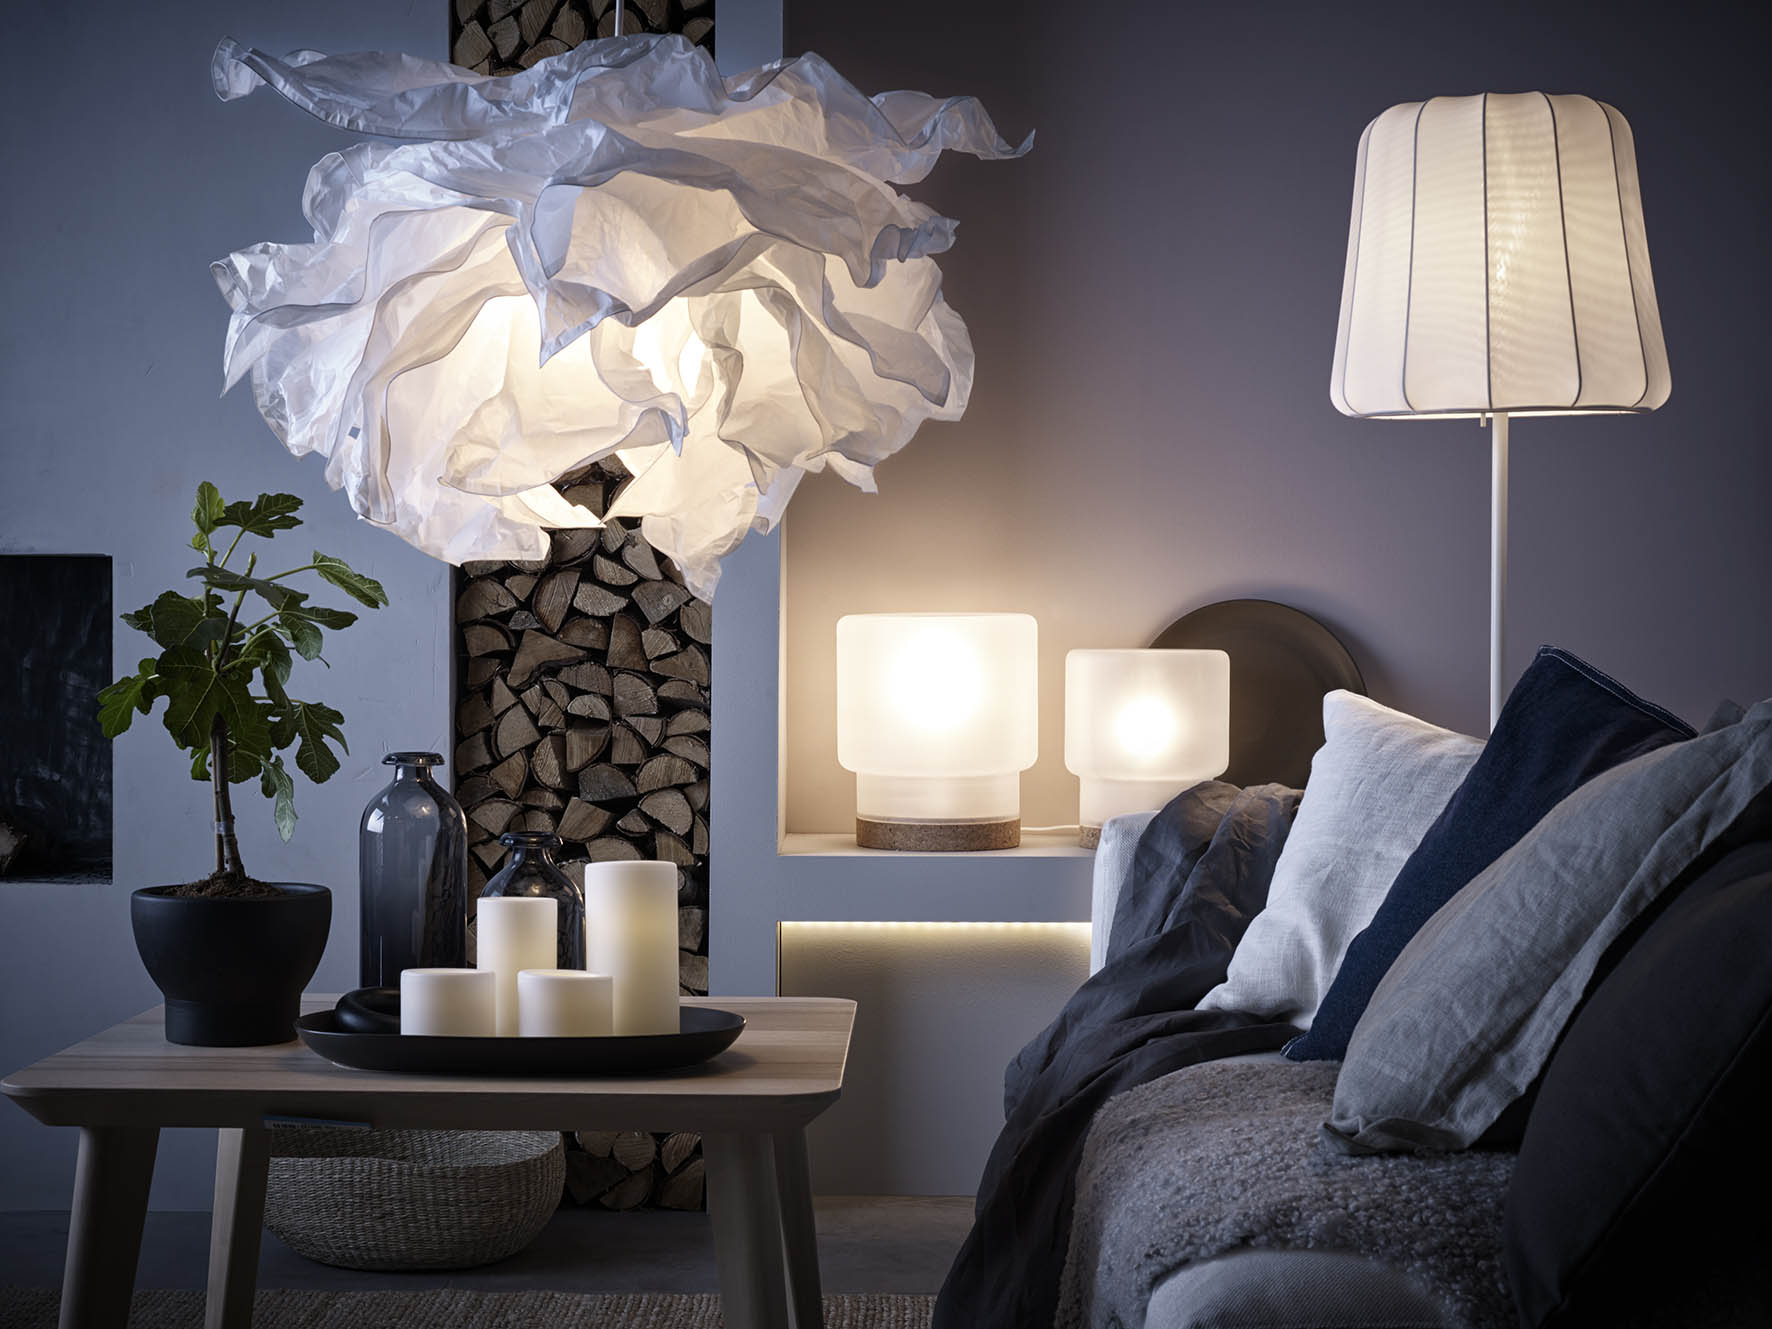 ikea schakelt over op verkoop milieuvriendelijke led verlichting nieuws startpagina voor. Black Bedroom Furniture Sets. Home Design Ideas